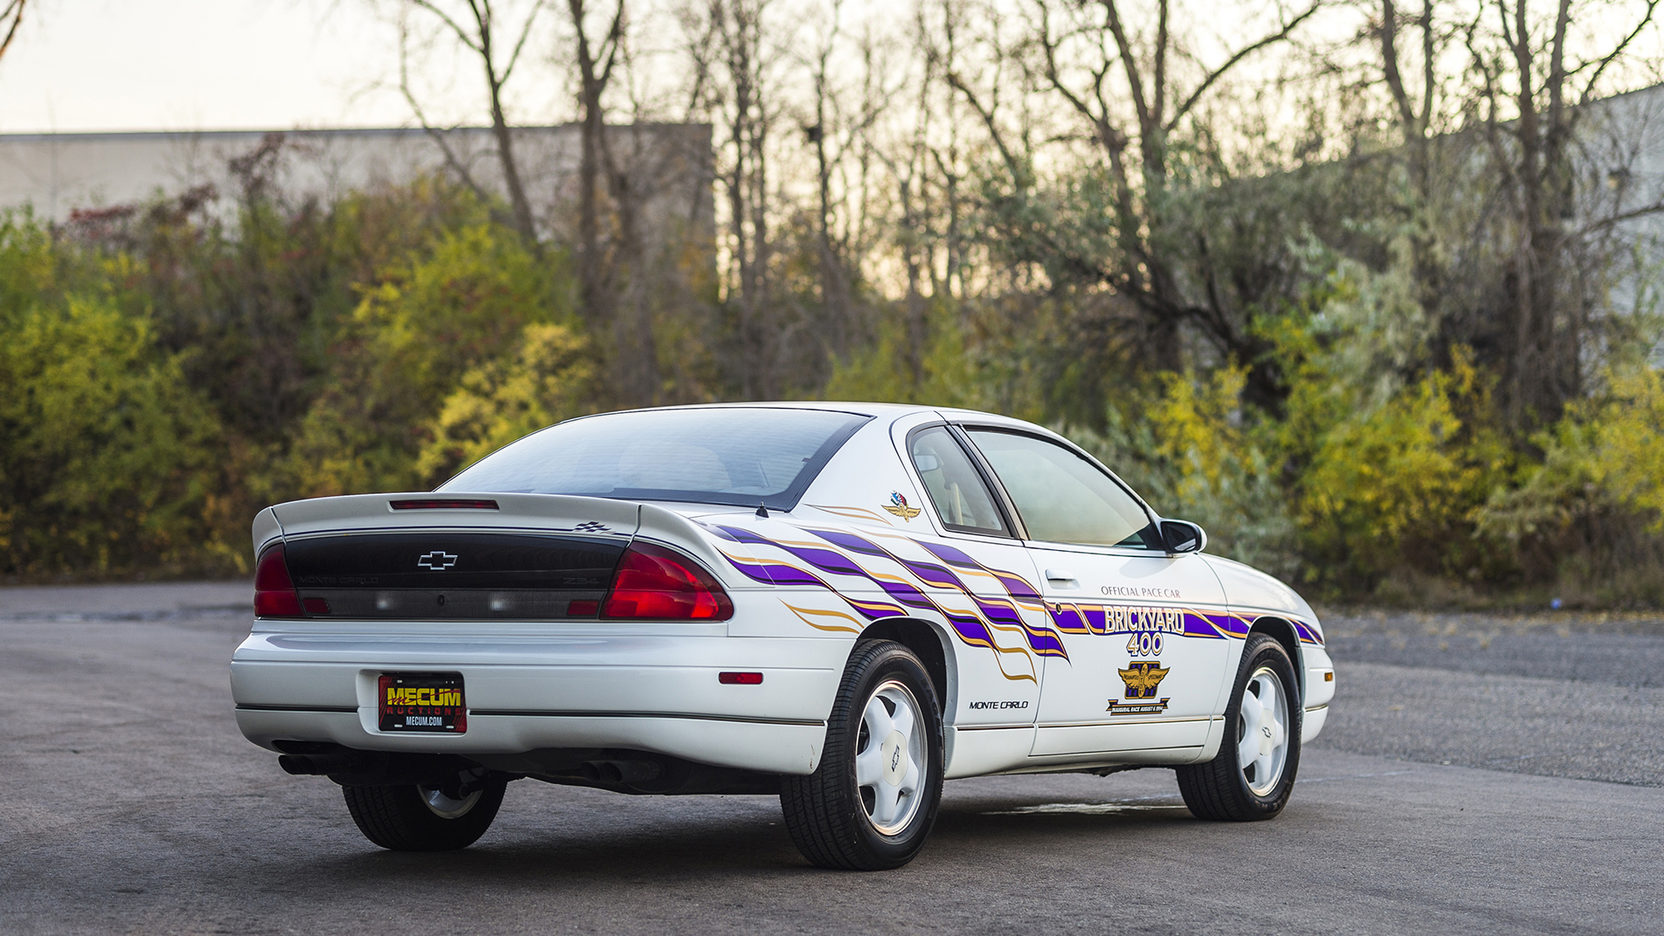 hight resolution of 1995 chevrolet monte carlo z34 pace car edition 3 full screen